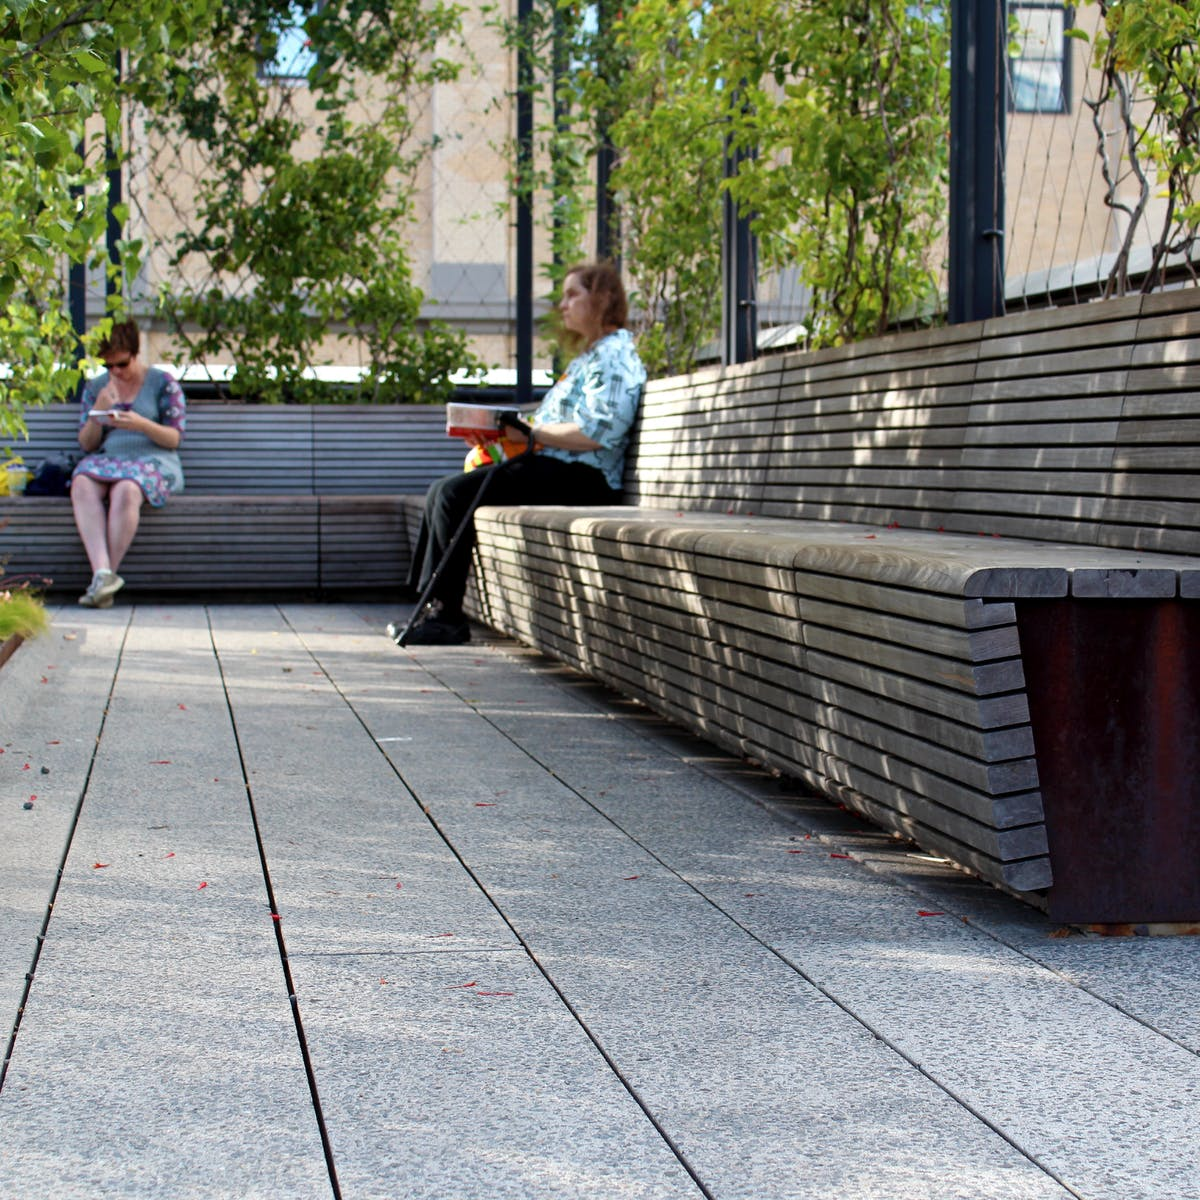 People Friendly Furniture In Public Places Matters More Than Ever In